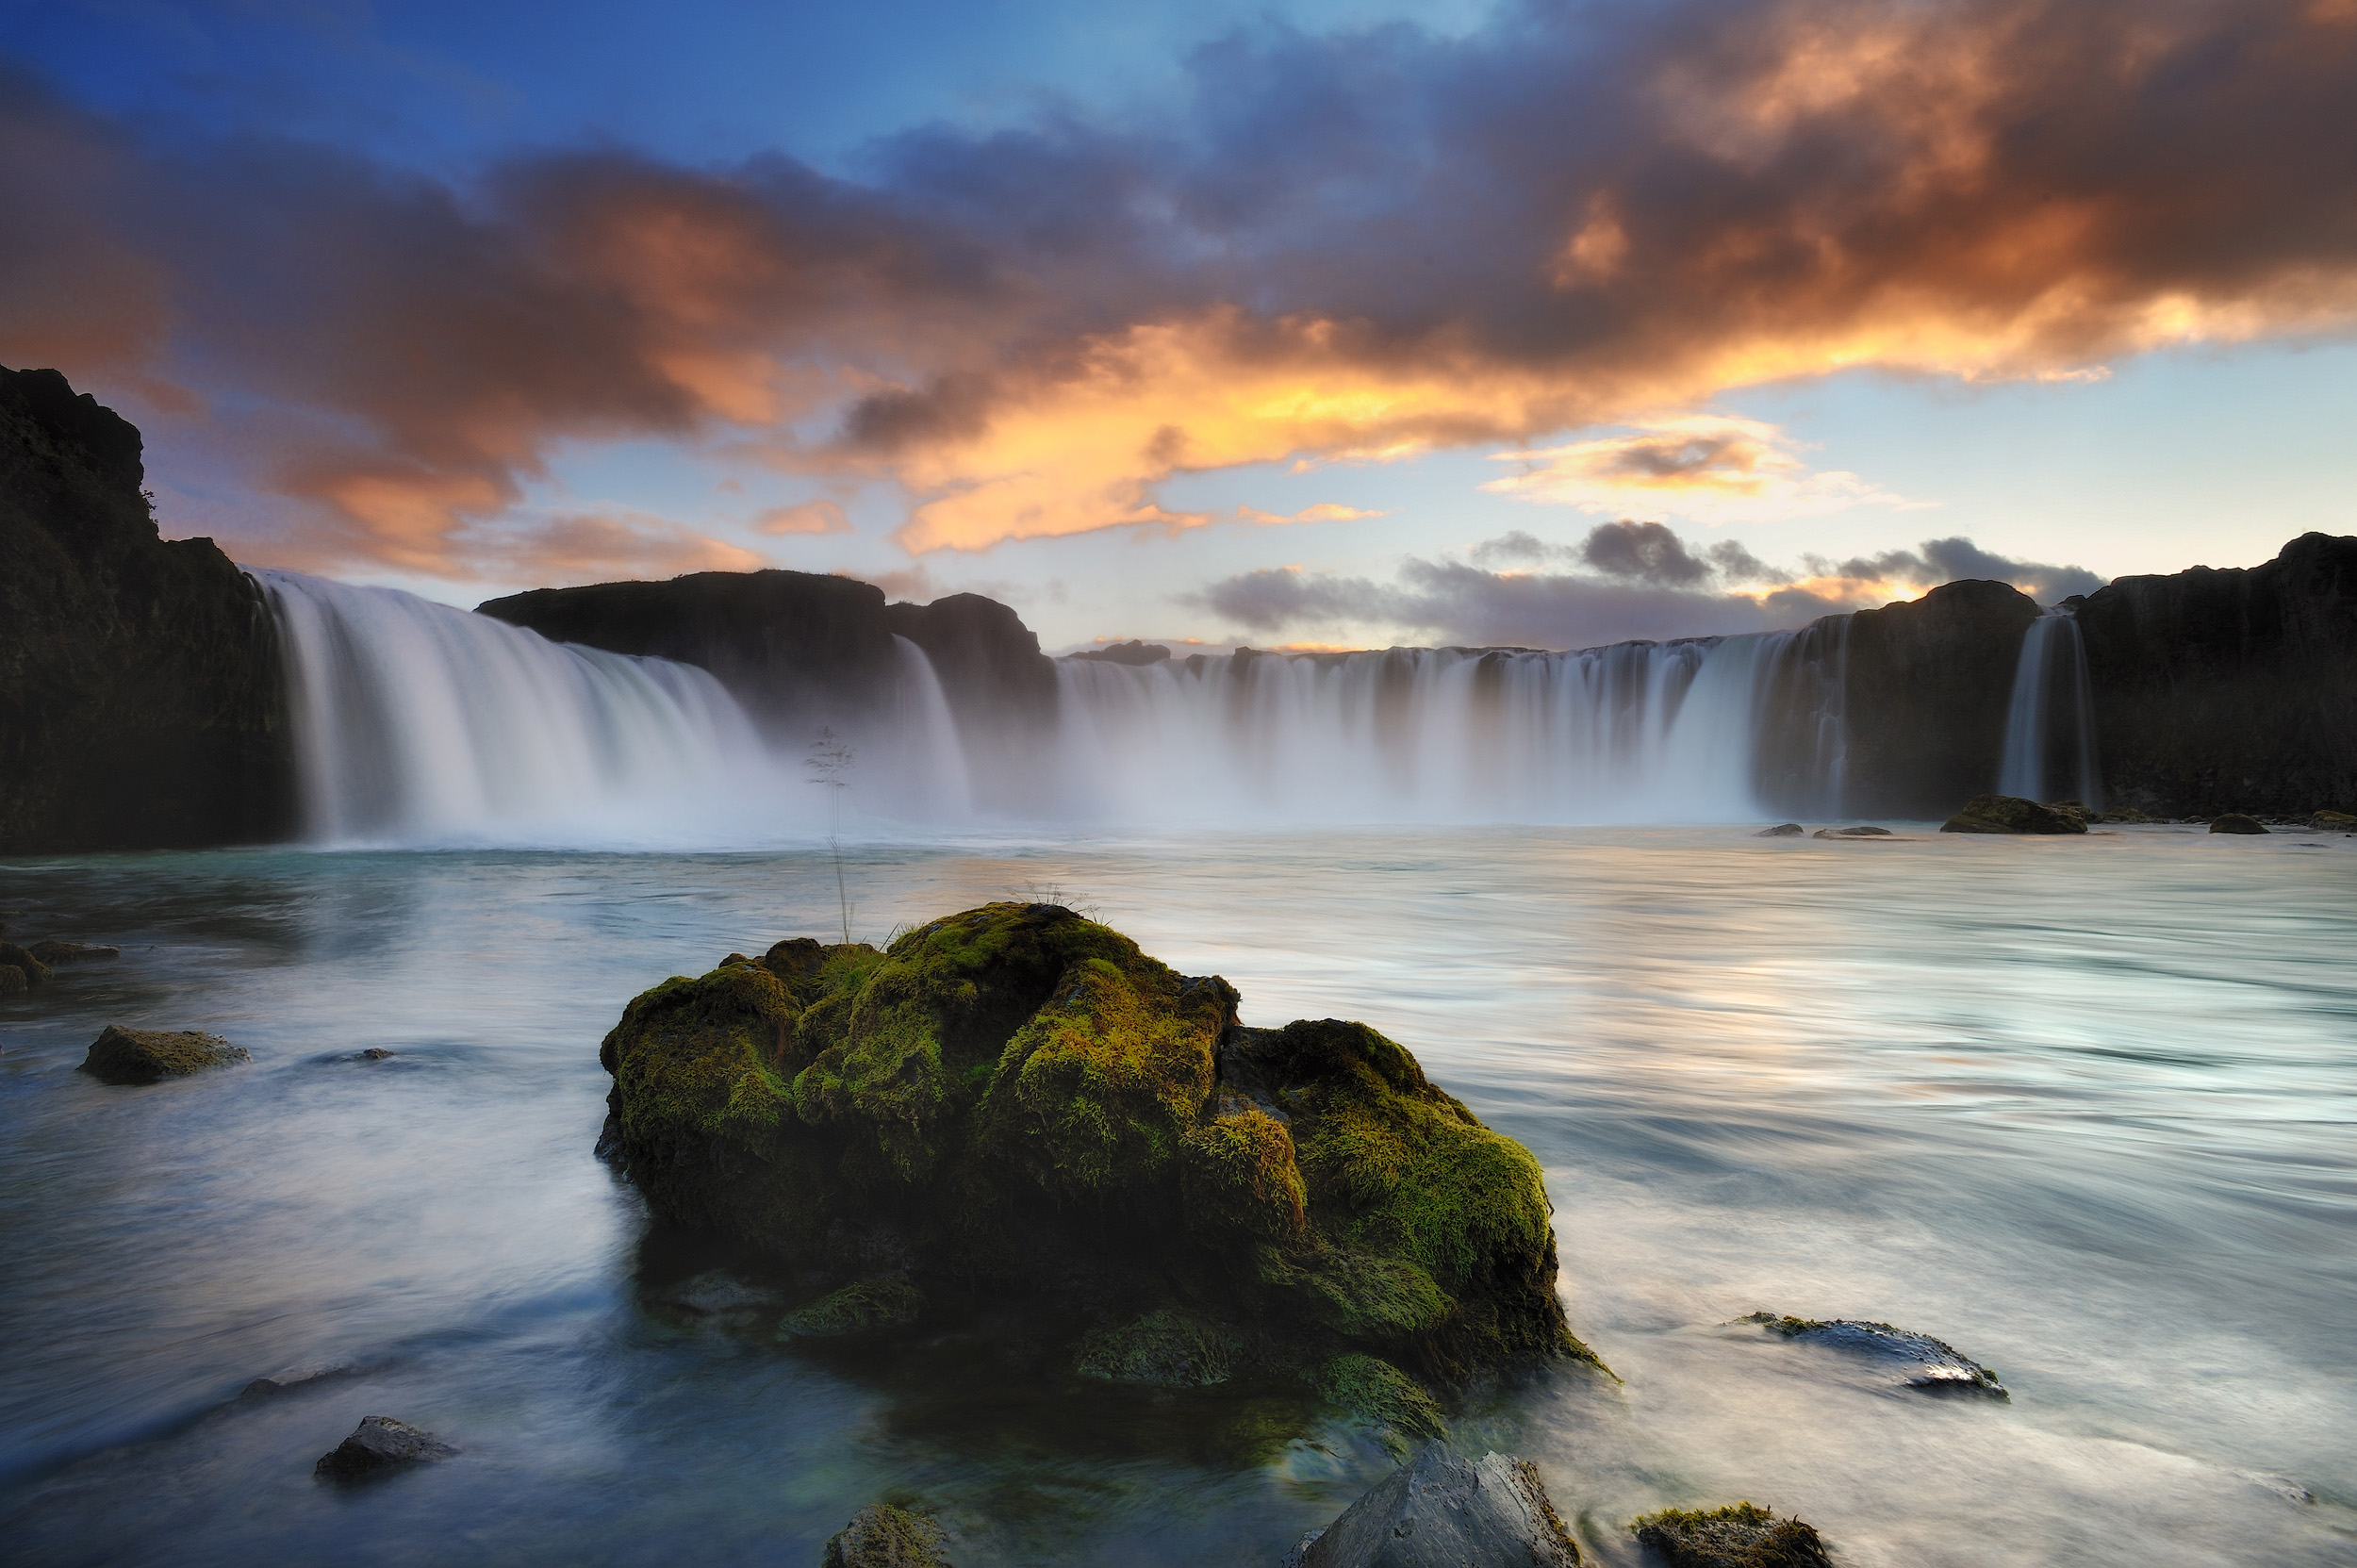 Godafoss  The waterfalls at Godafoss in northern Iceland at sunset.